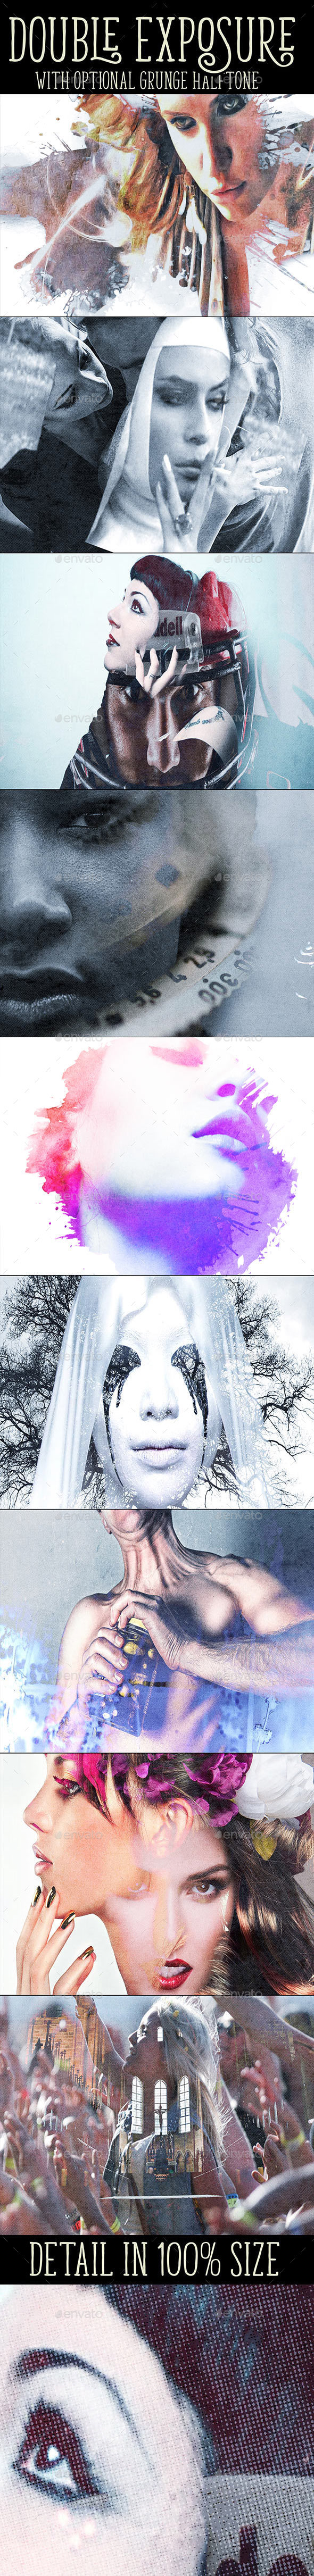 Double Exposure with Optional Grunge Overlay - Photo Templates Graphics